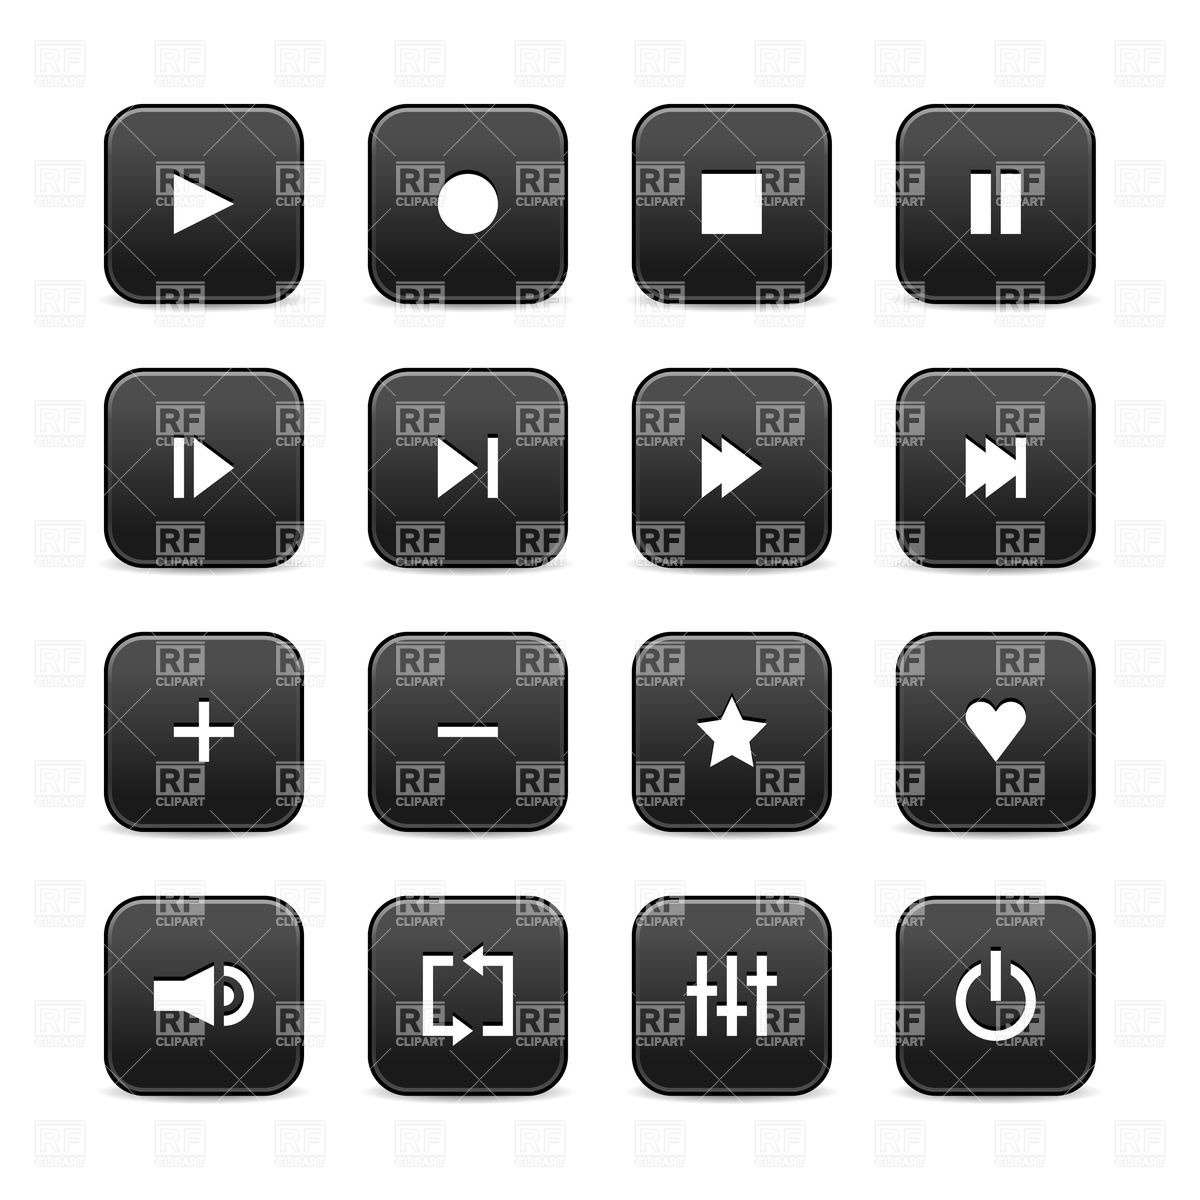 Audio player simple interface icons Vector Image #13527.